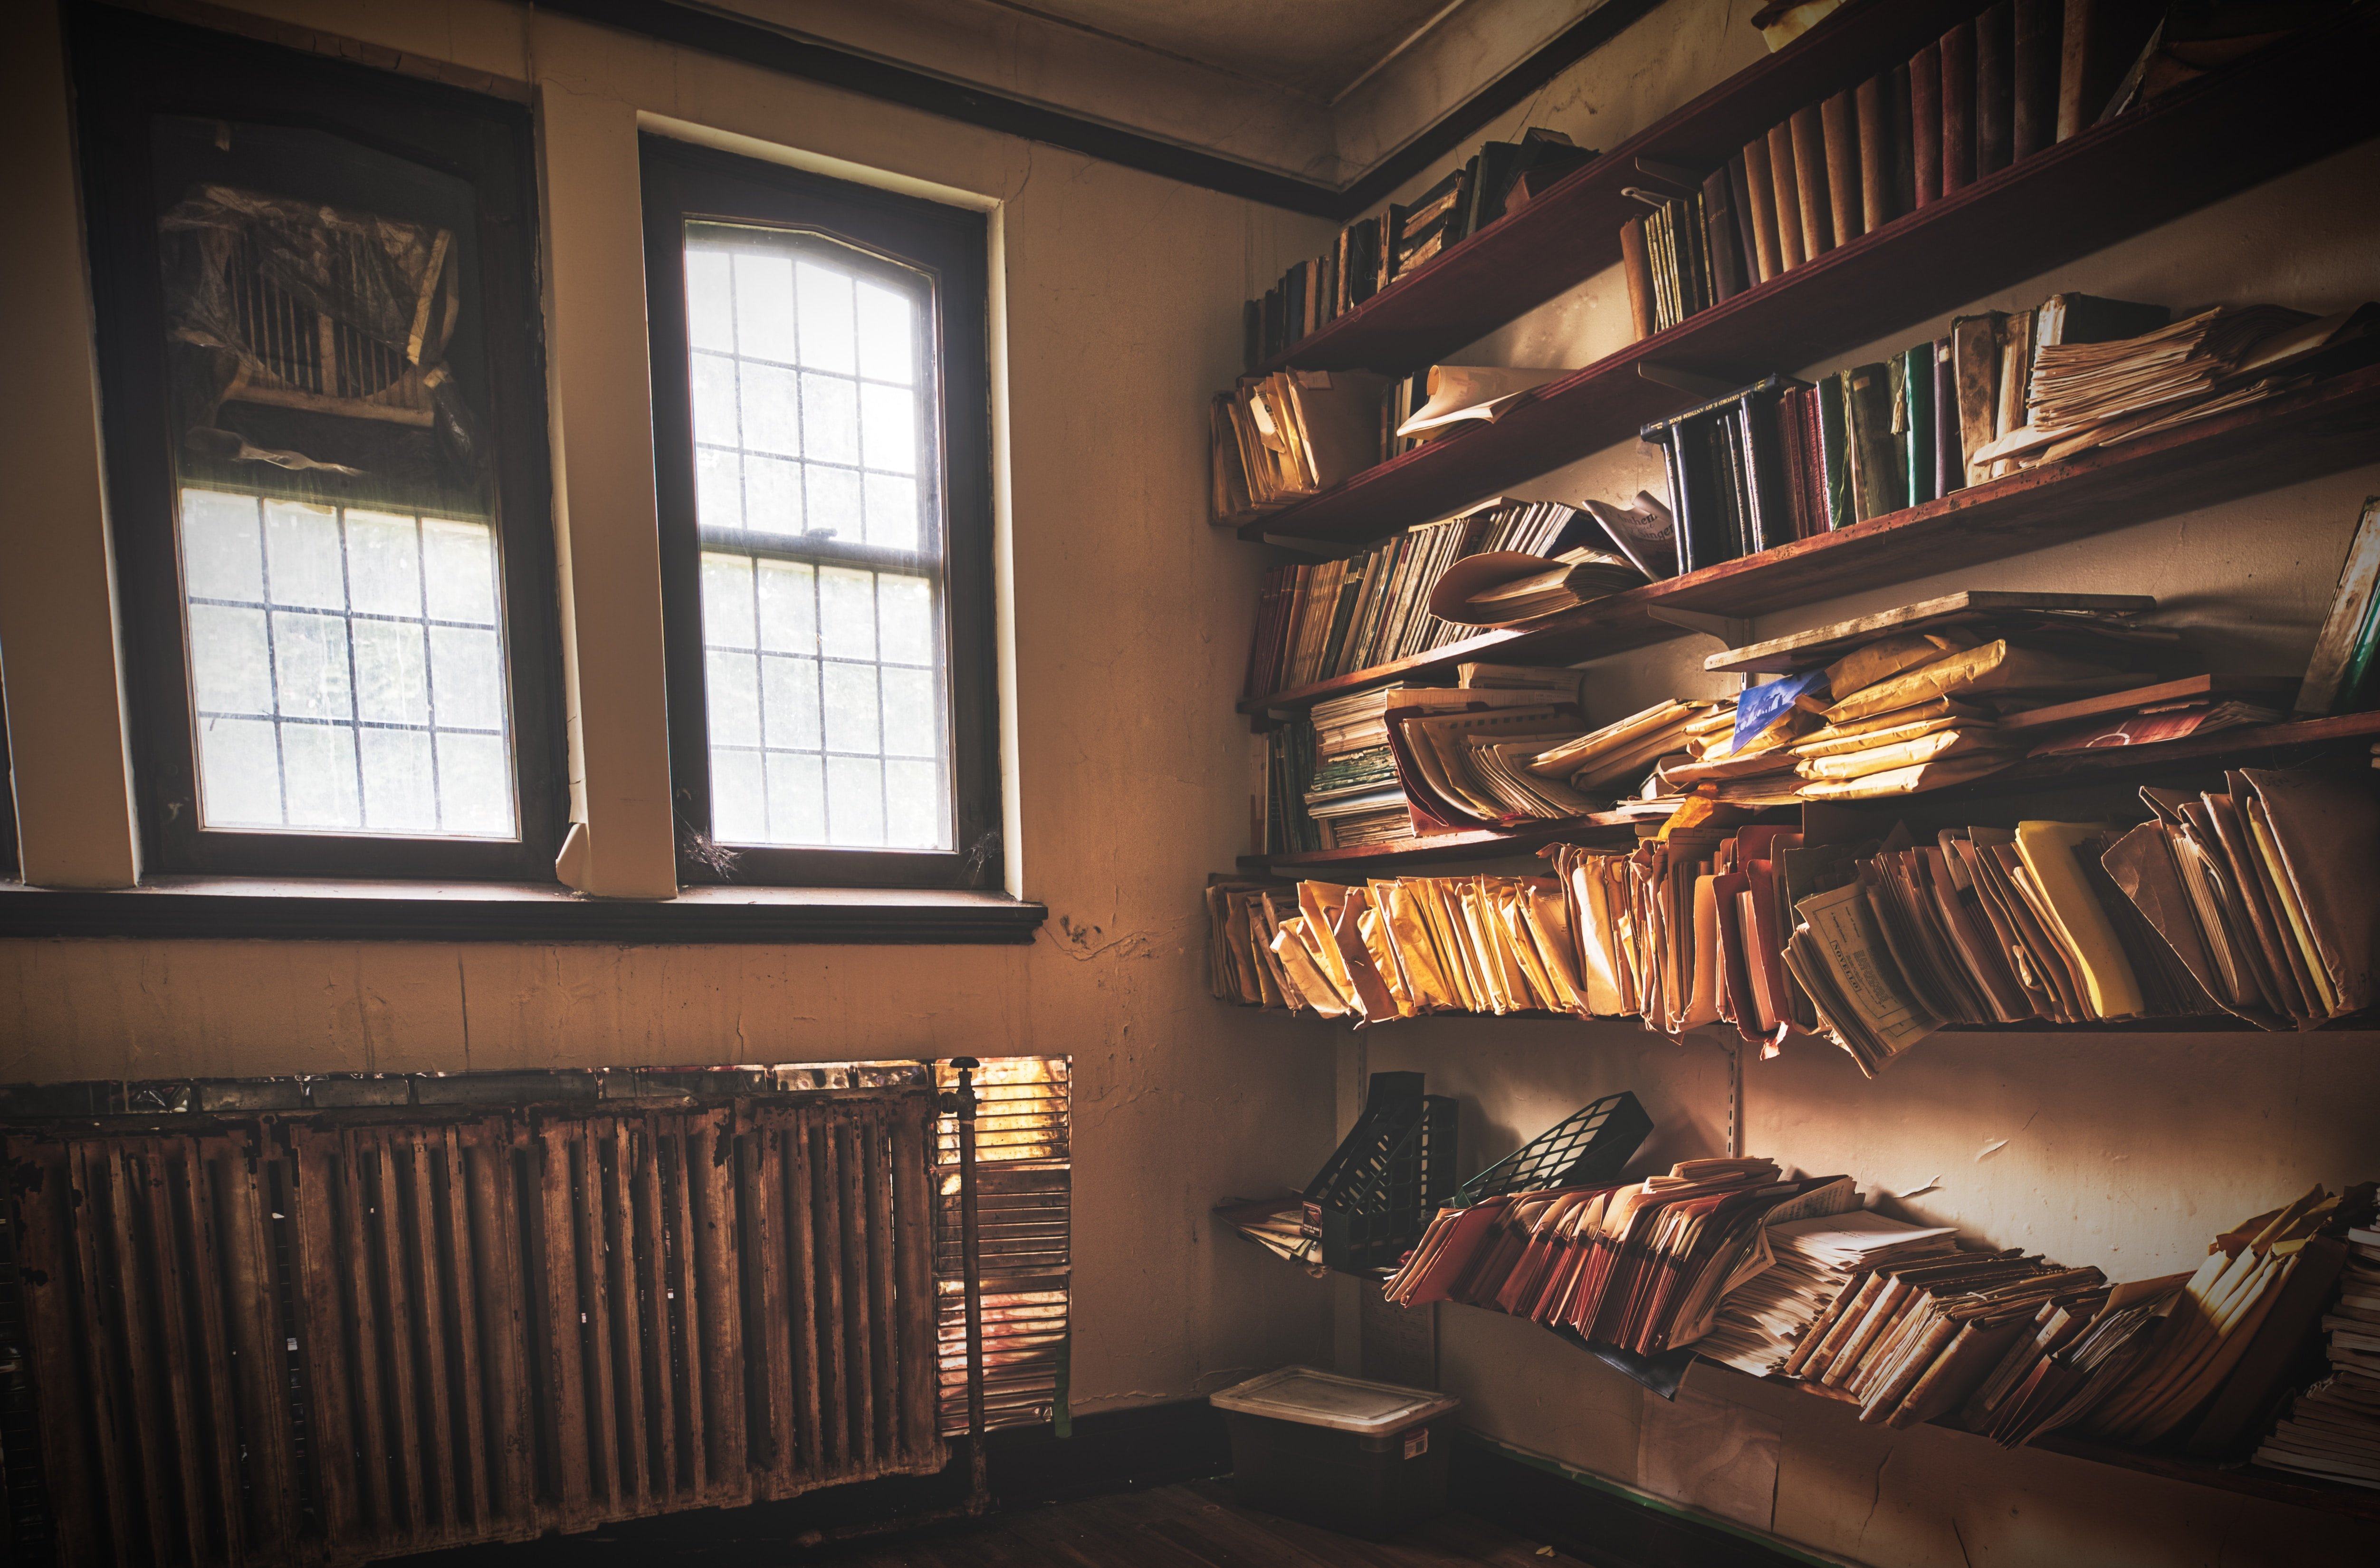 A messy room filled with books. | Source: Unsplash